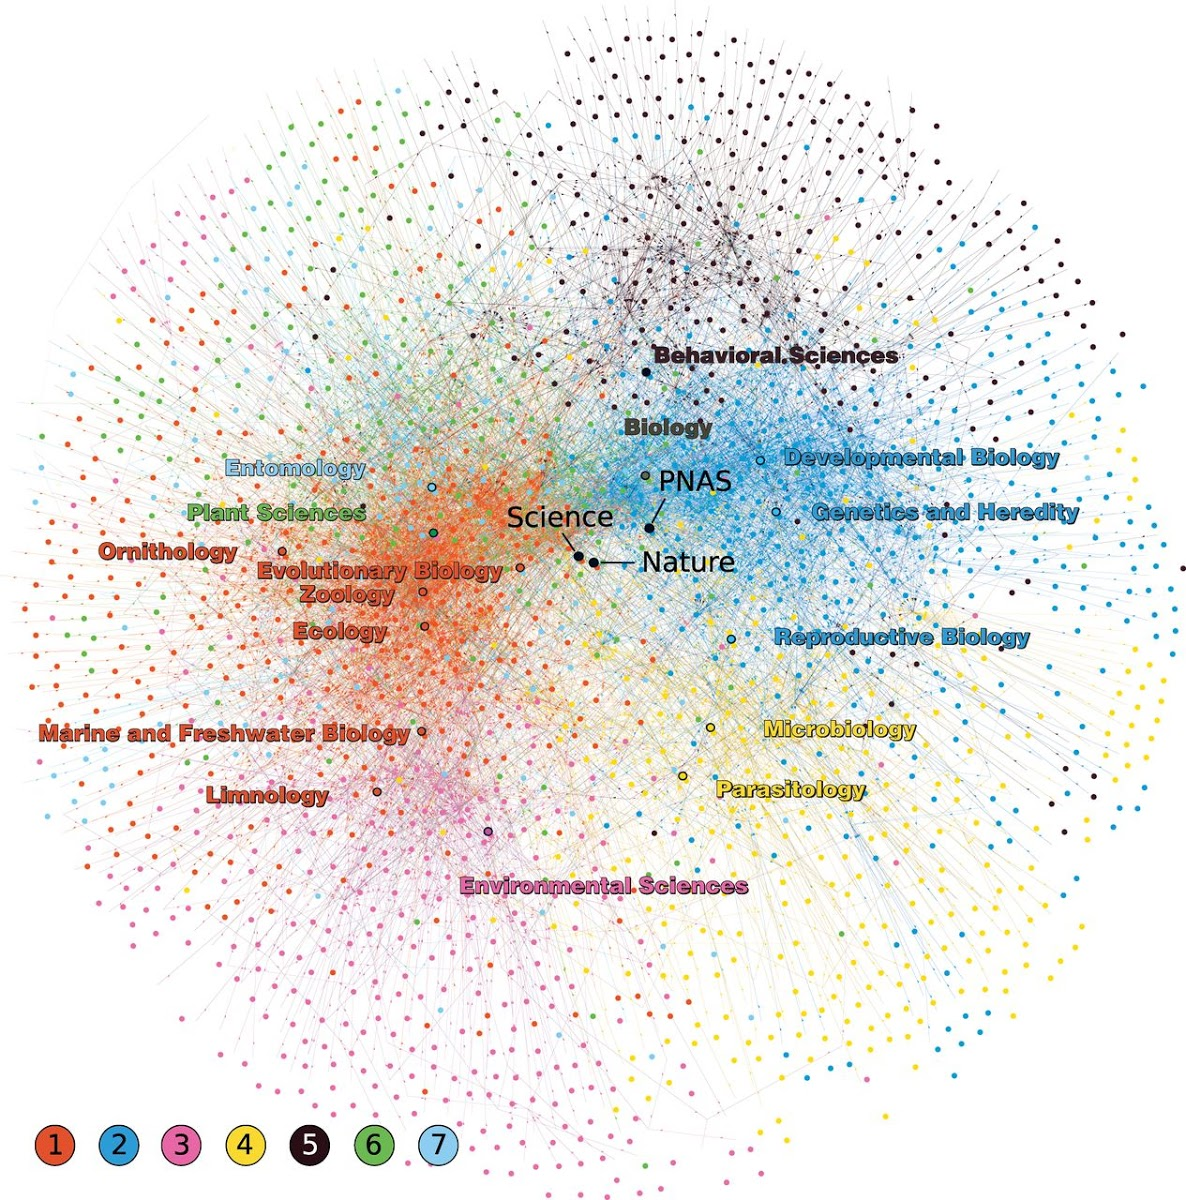 009 Flow Citation Network Researchs Awful Research Papers Full